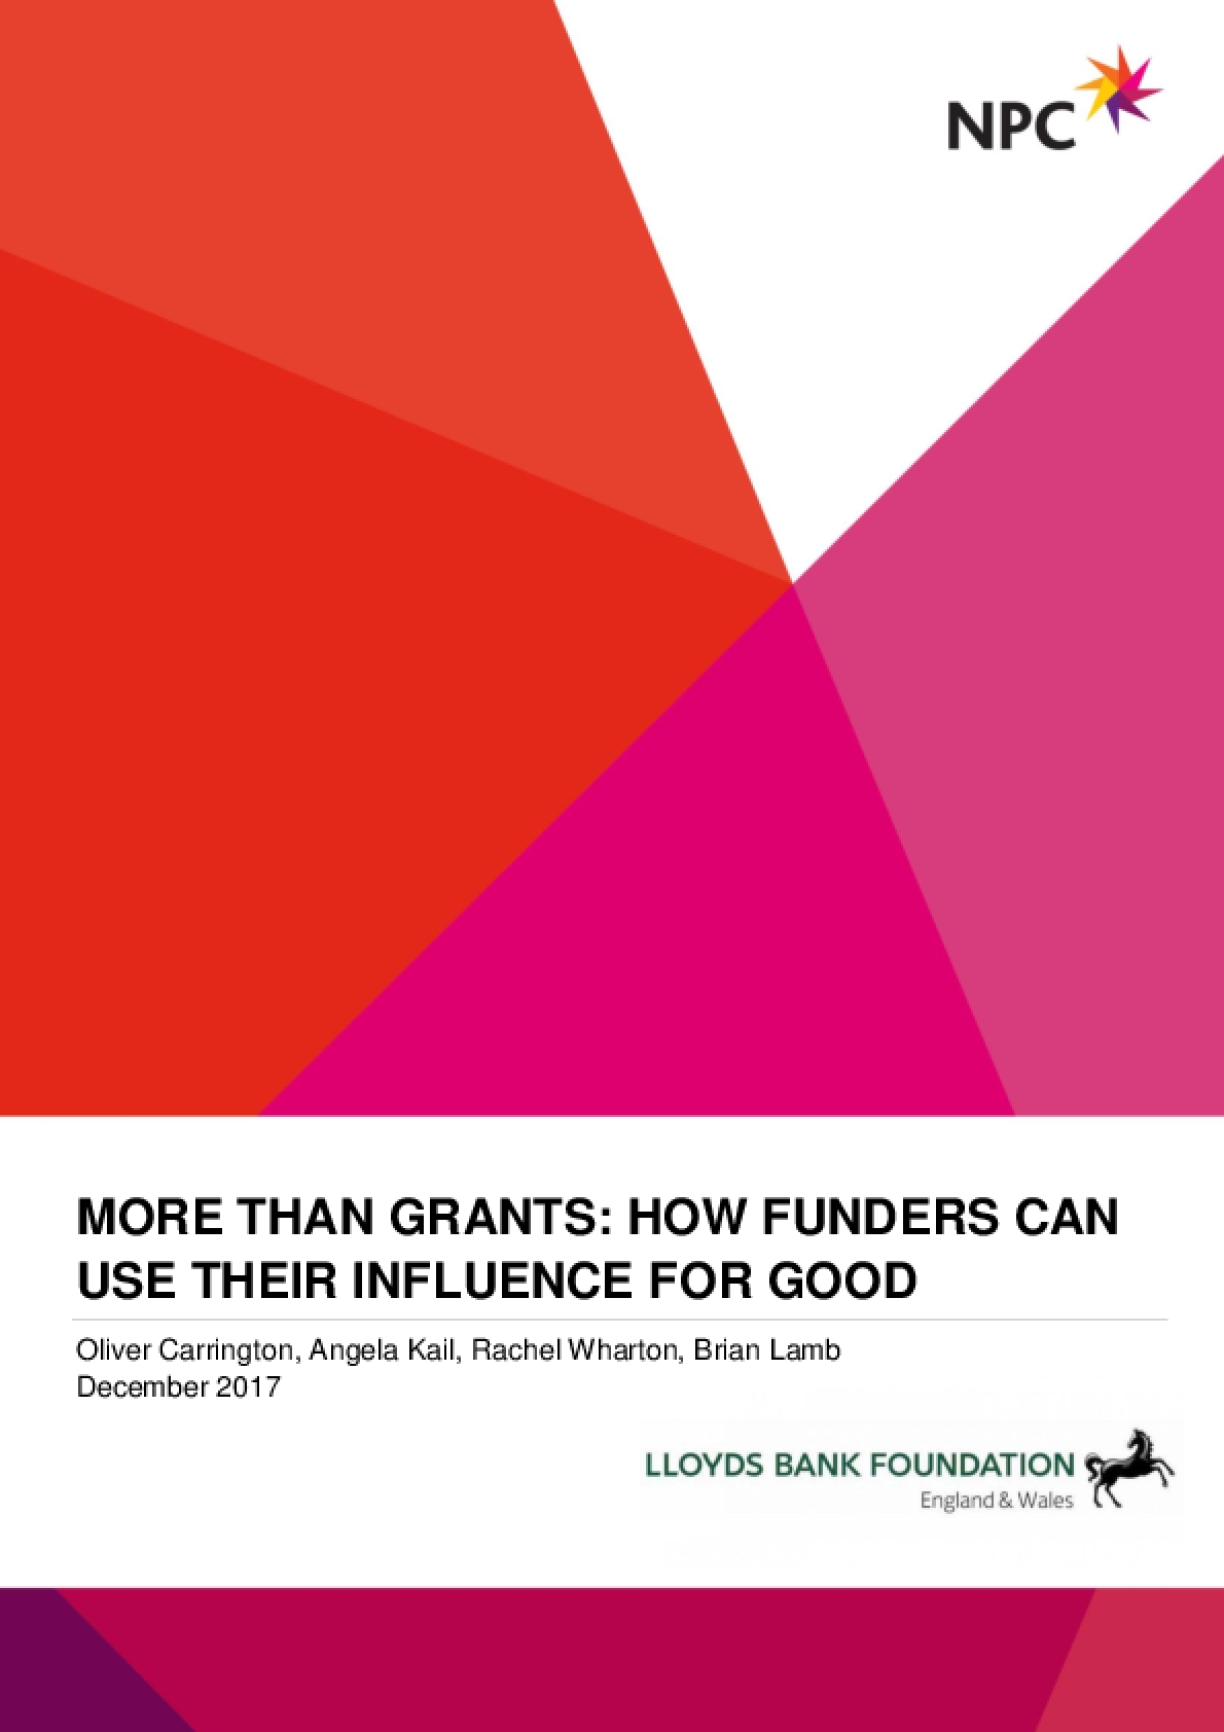 More than Grants: How Funders Can Use Their Influence for Good